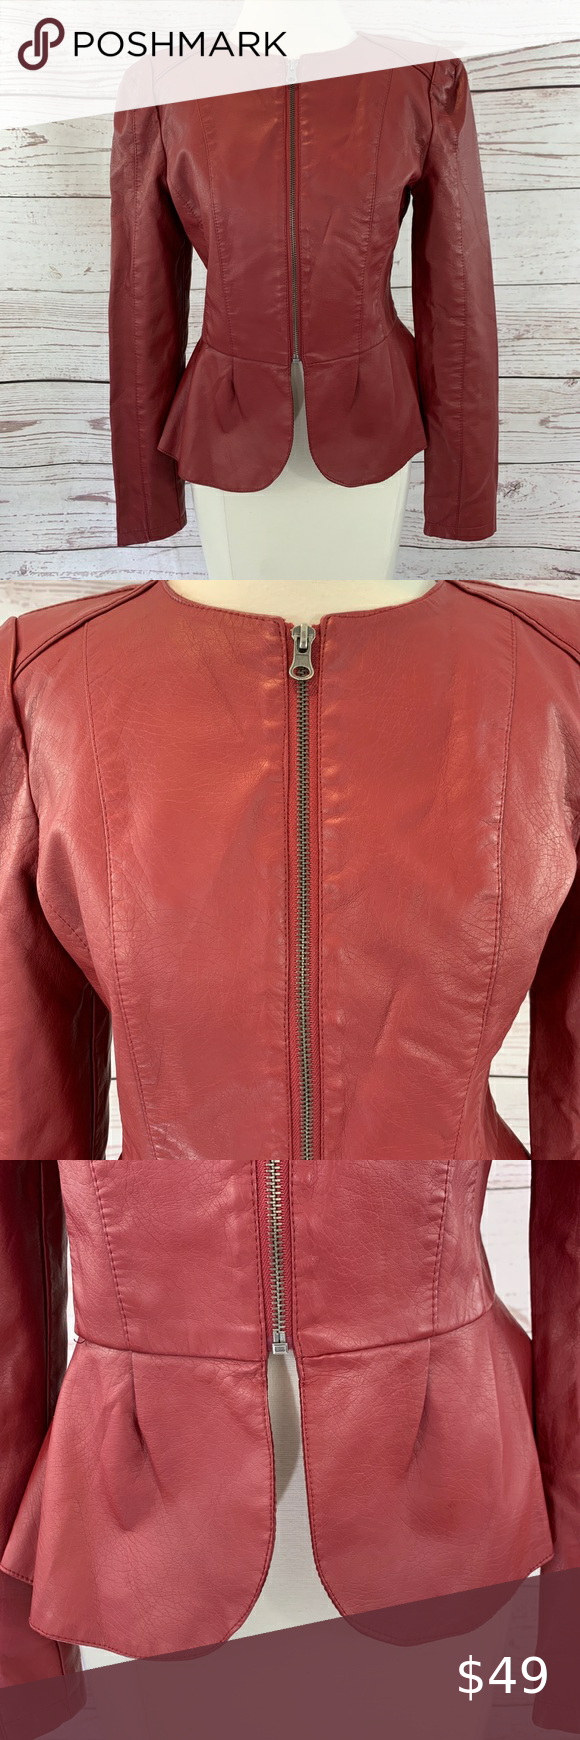 New Look Faux Leather Flare Hips Zipper Cuff New Look Leather Jacket New Look Jackets Brown Faux Leather Jacket [ 1740 x 580 Pixel ]